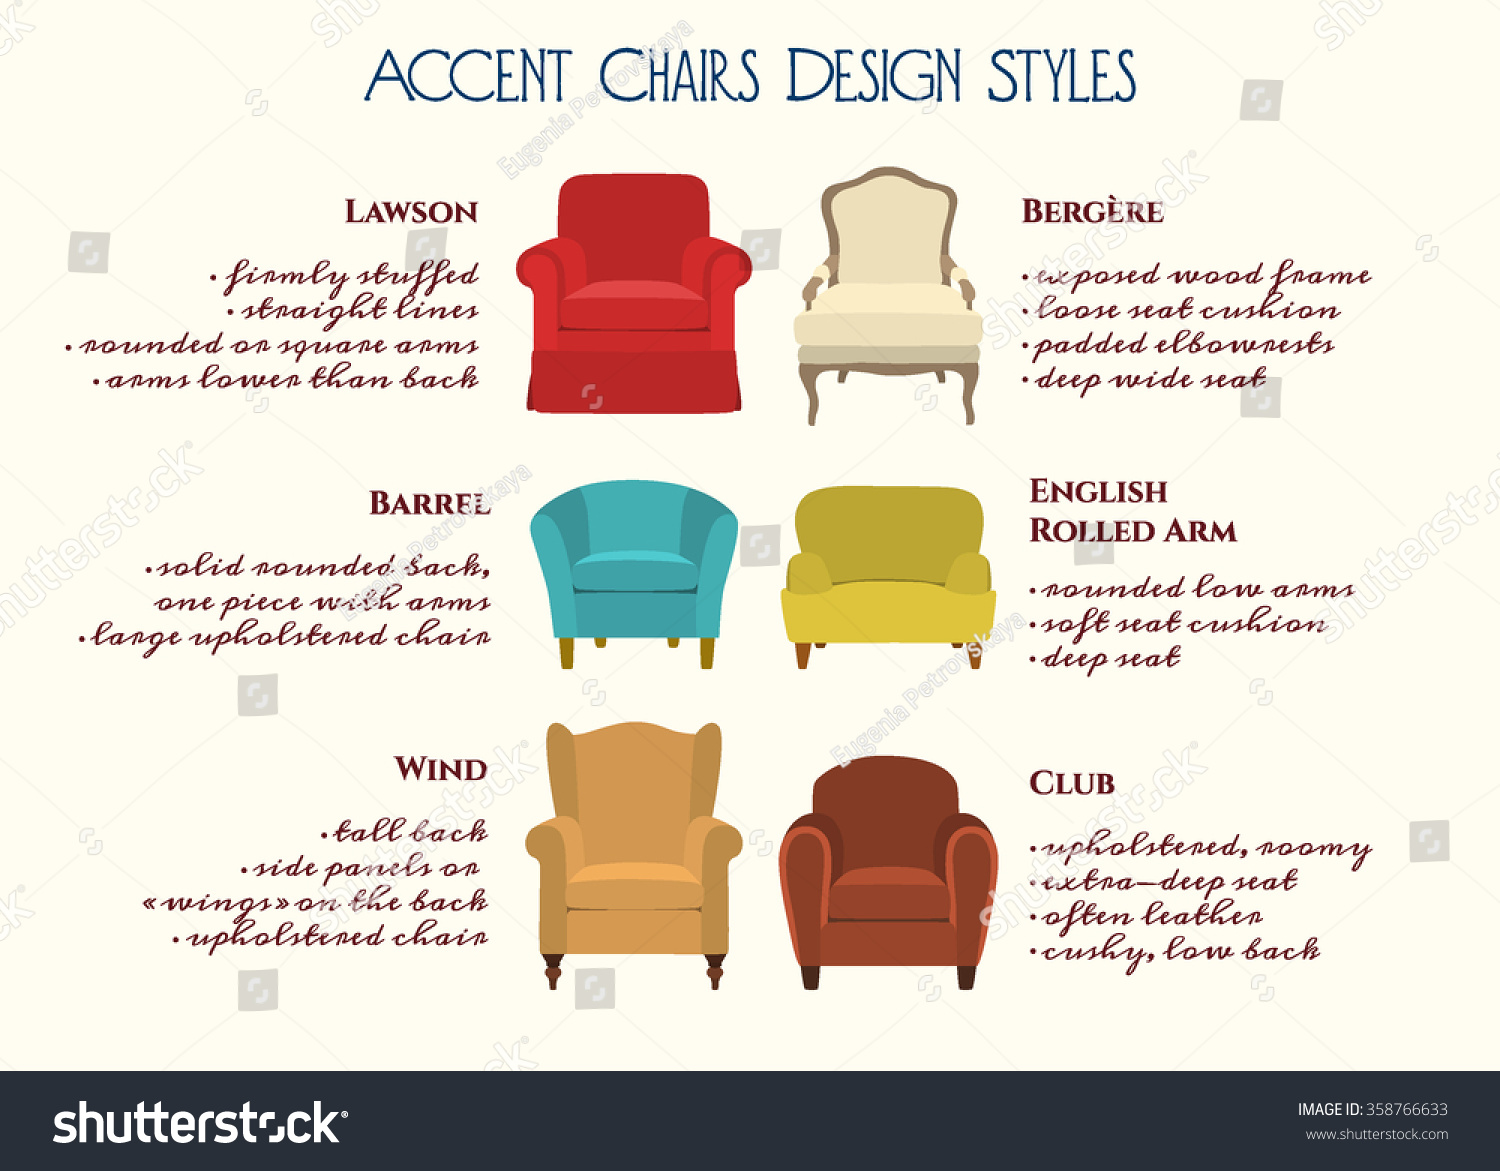 Styles Of Chairs Vector Infographic Accent Chairs Design Styles Stock Vector